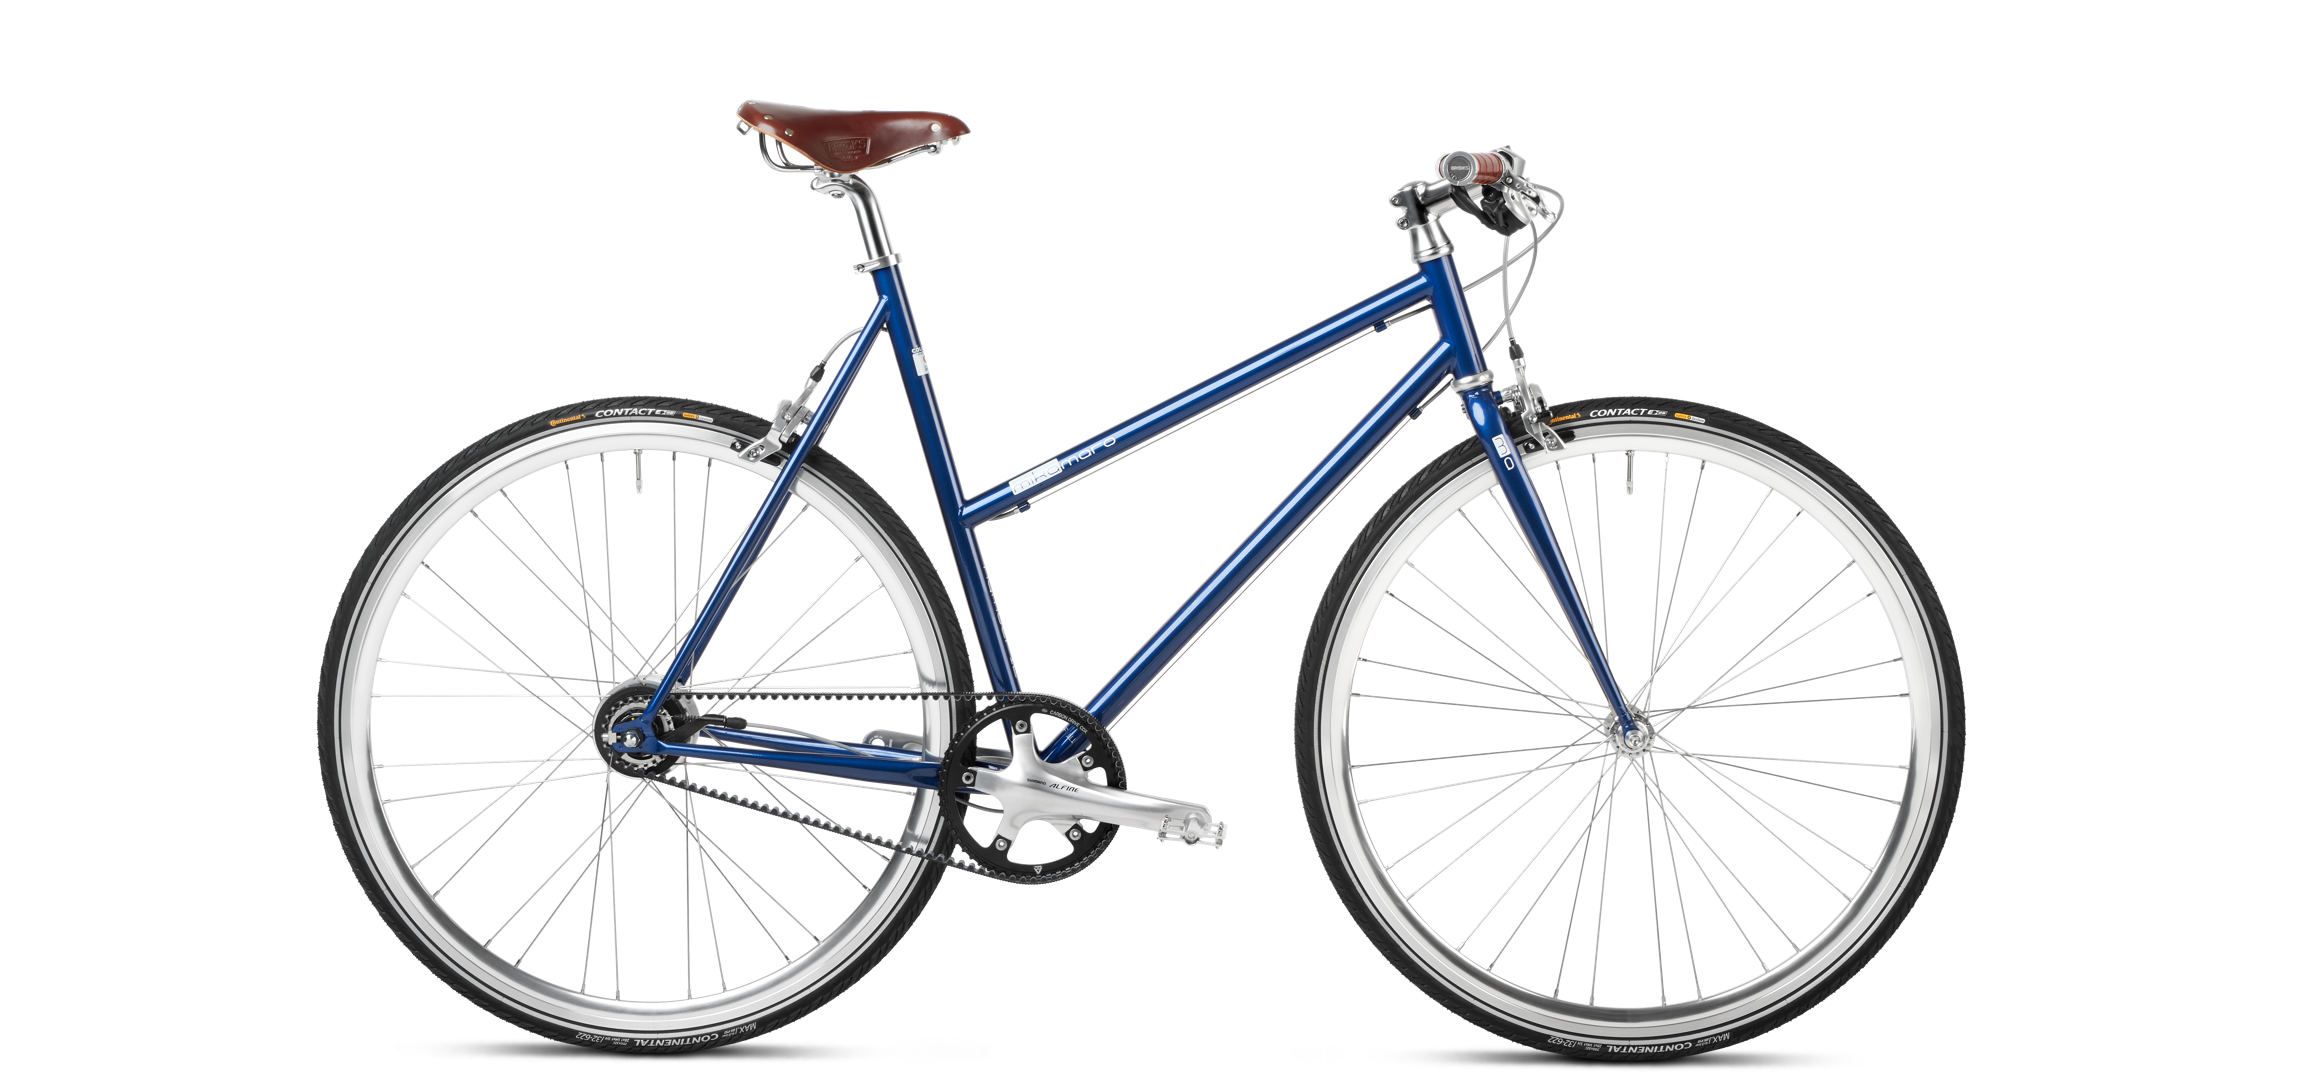 Urban Bike Women blau Gates Riemenantrieb Brooks